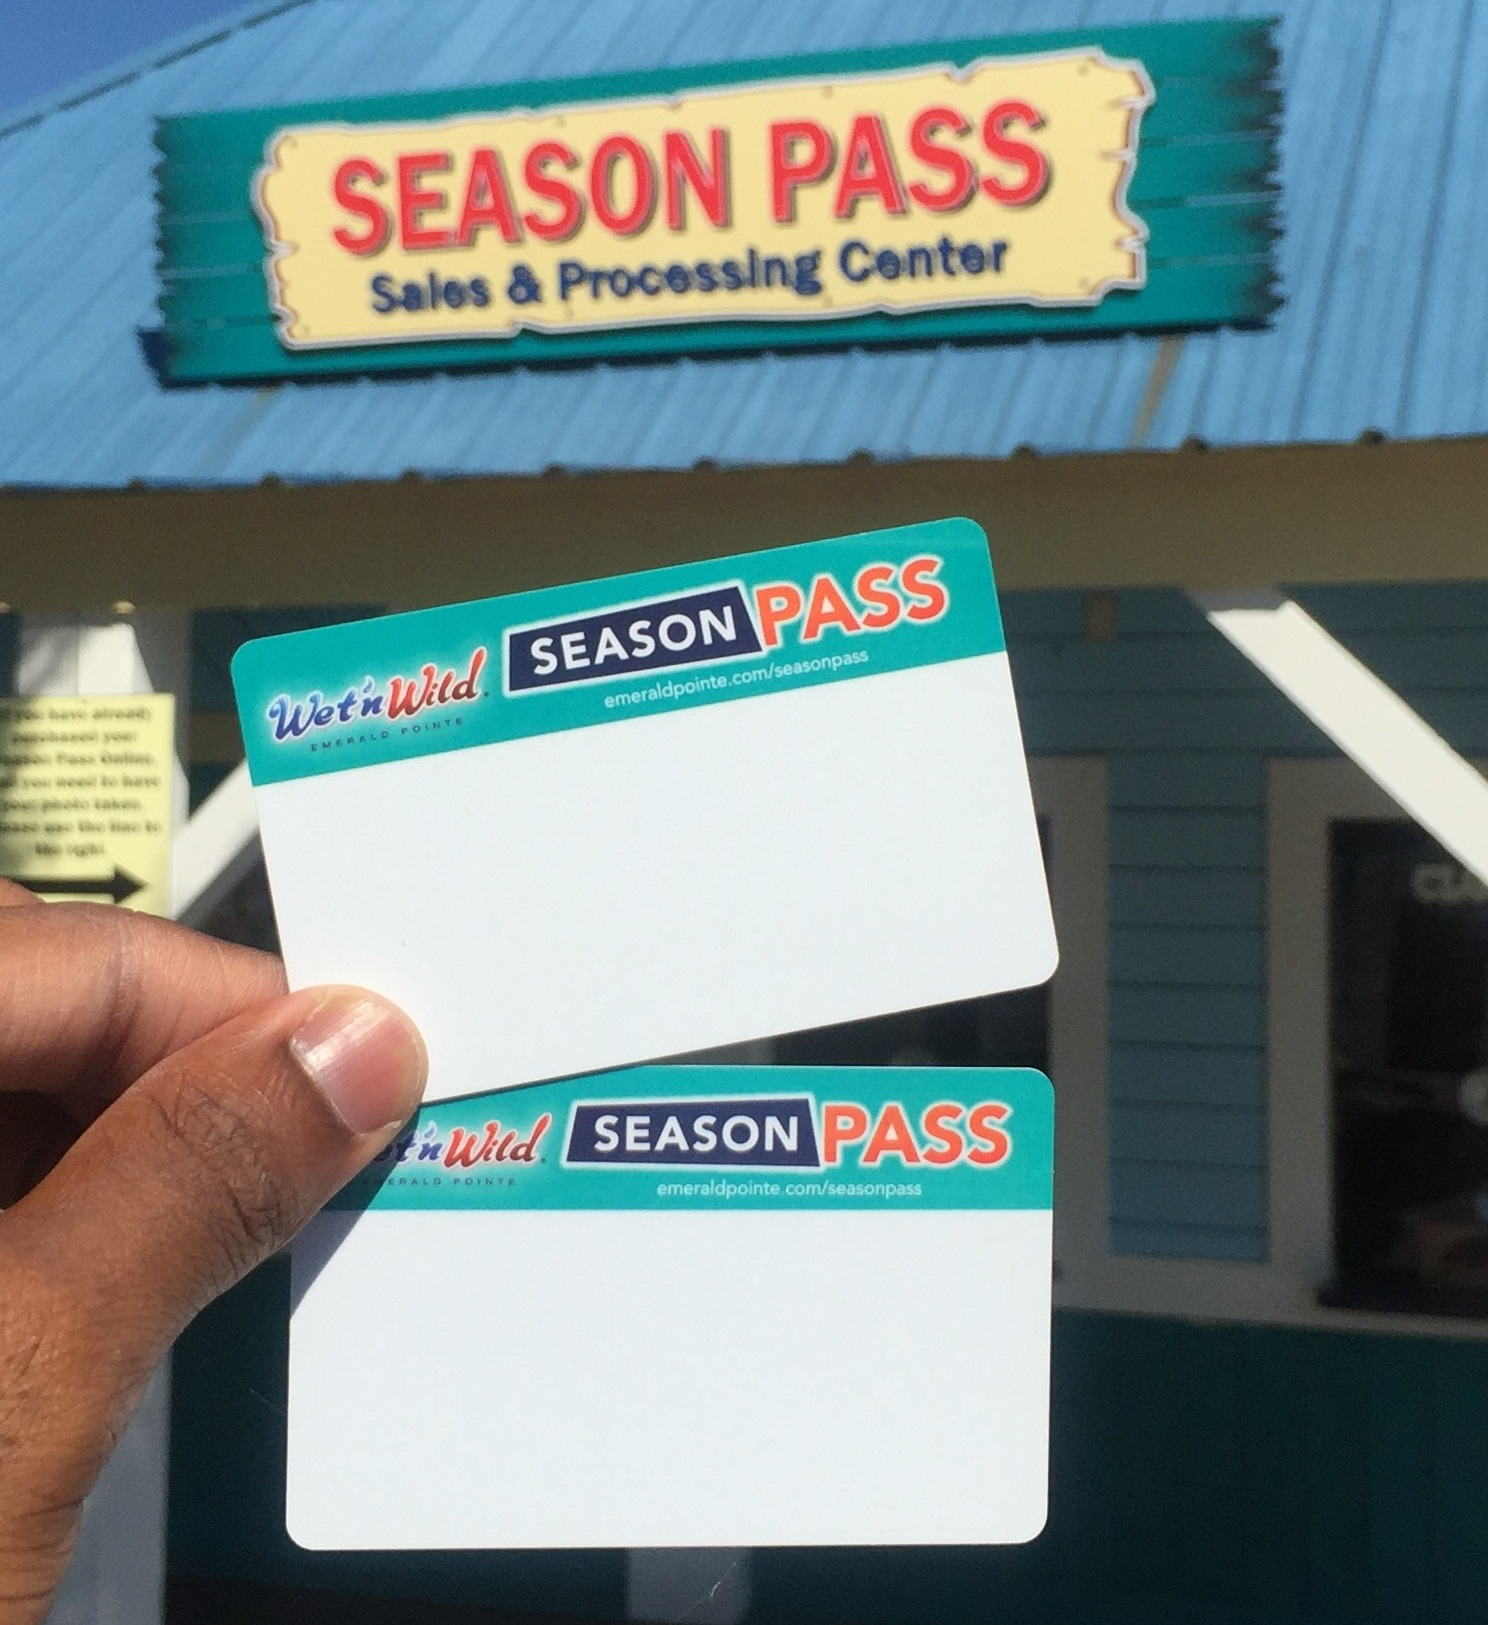 Two Season Pass Cards held up in front of the Season Pass building